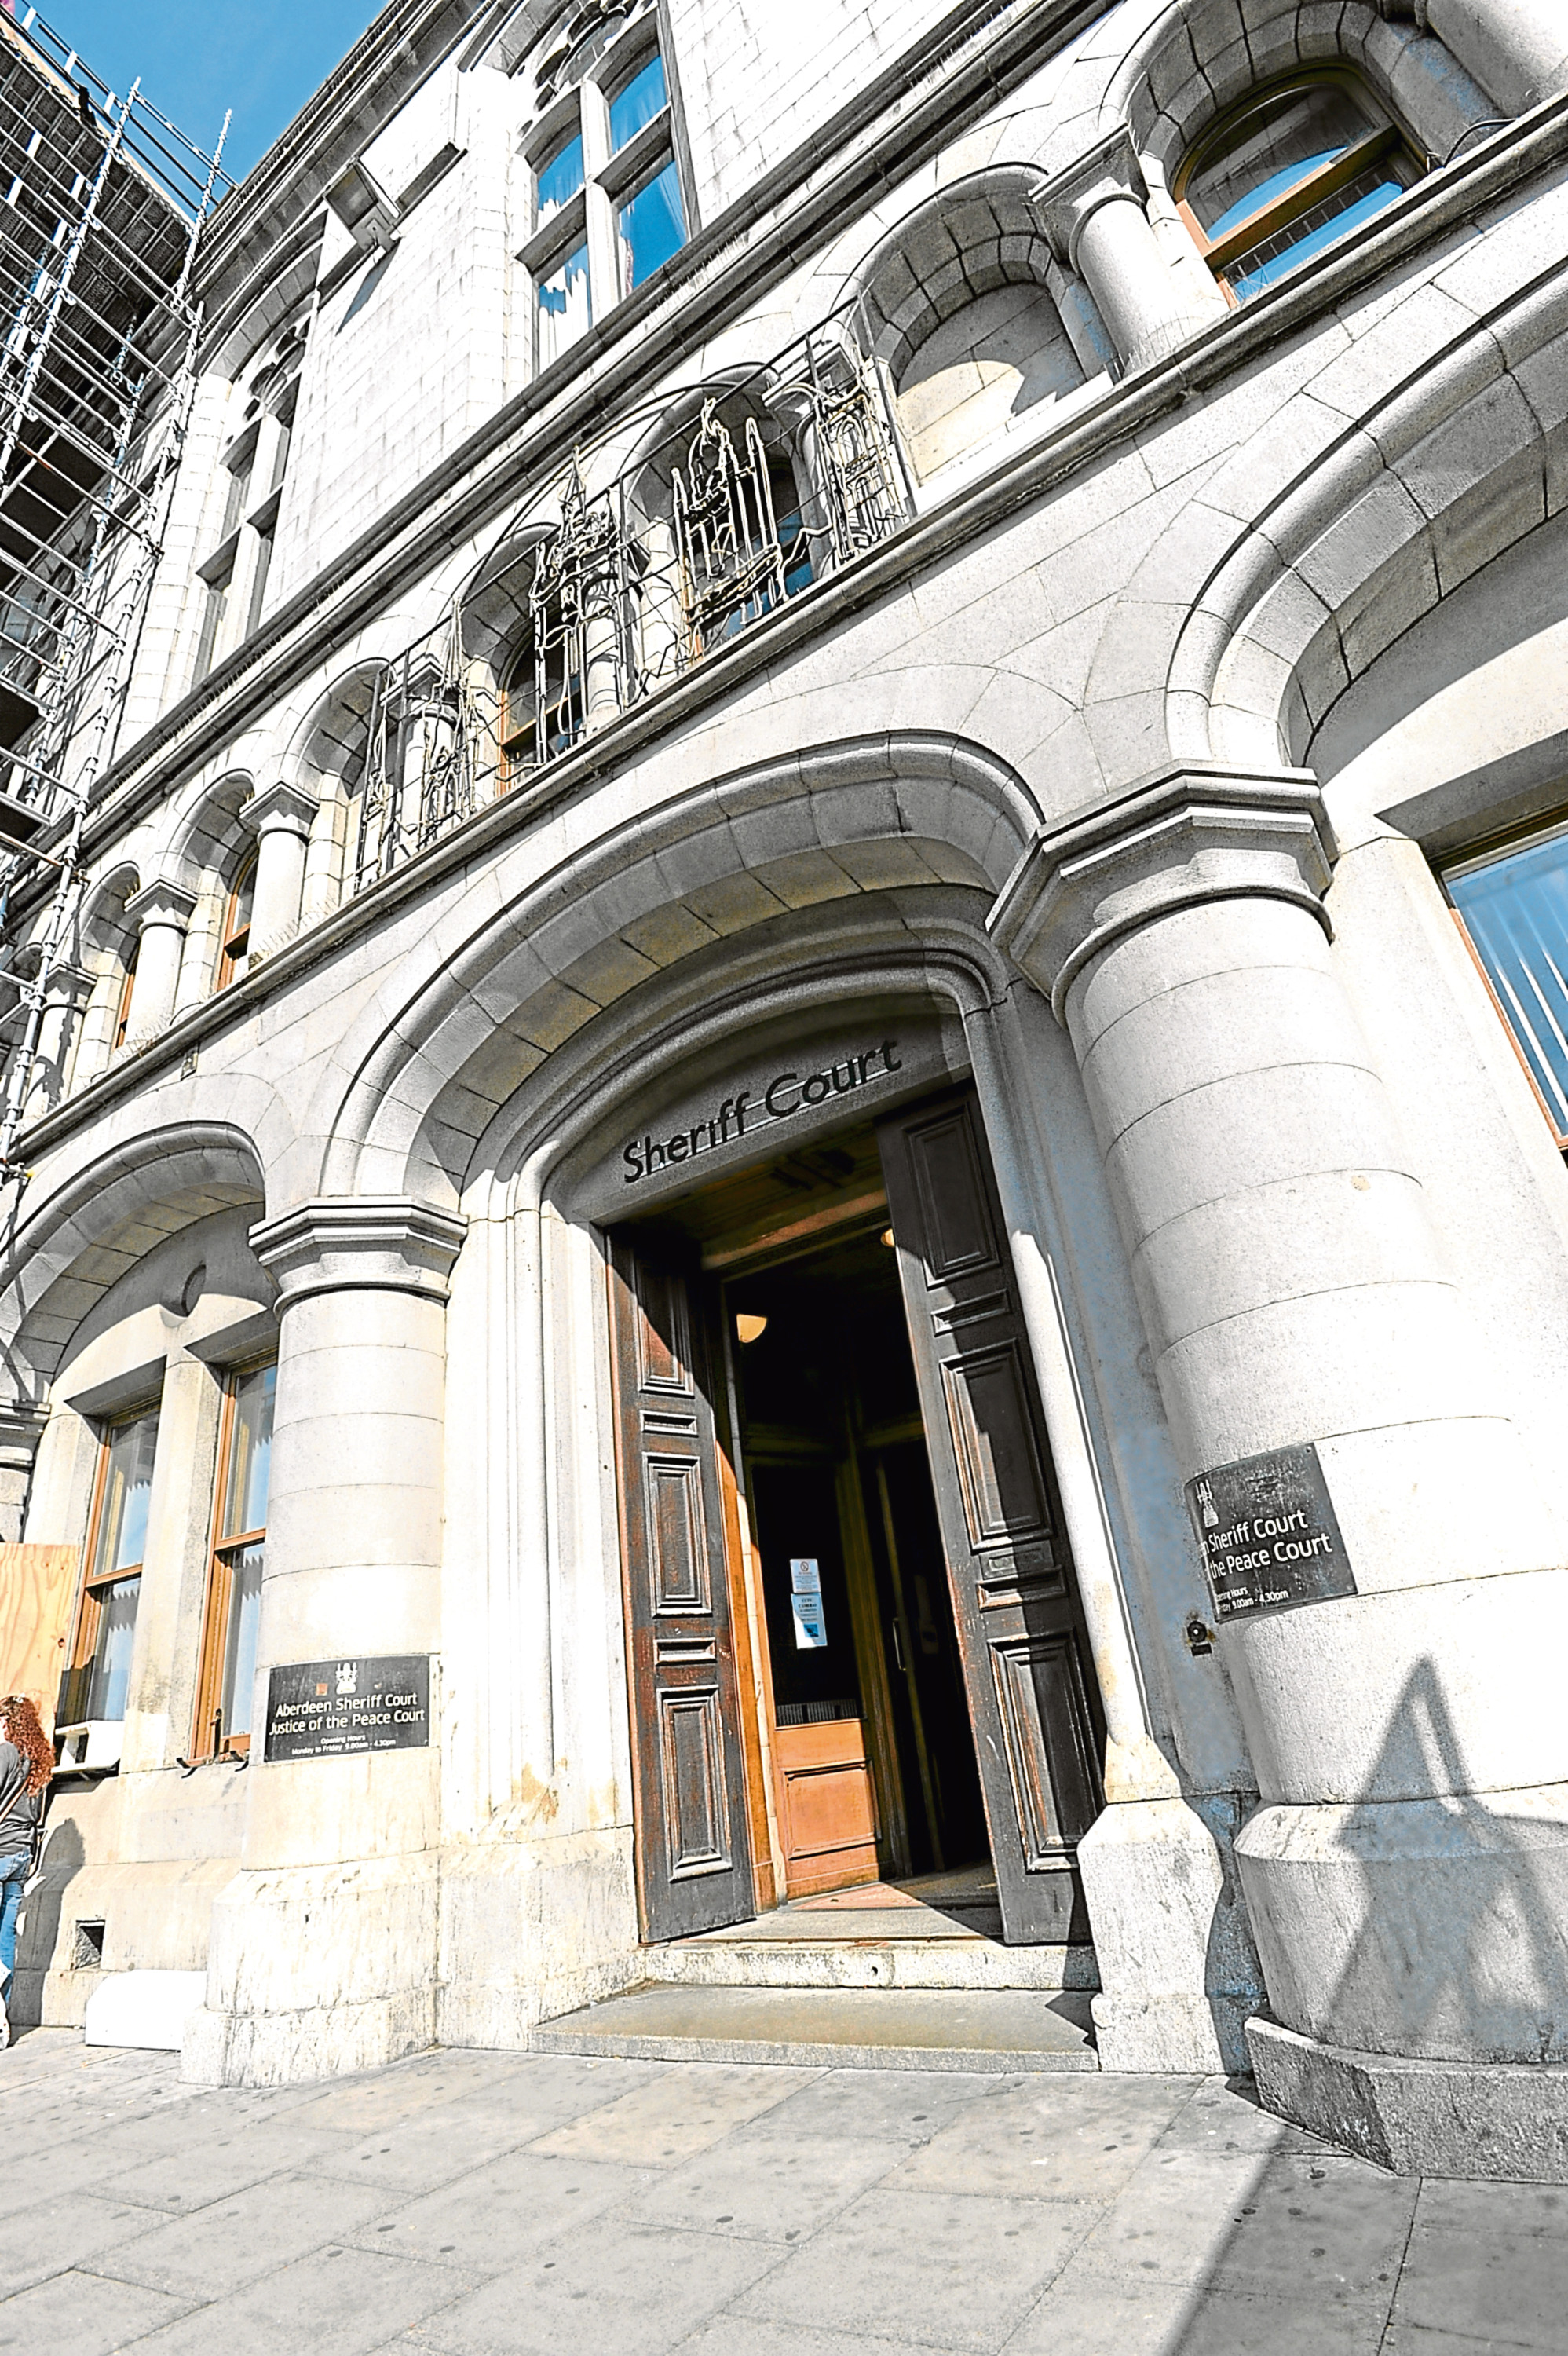 The case was heard at Aberdeen Sheriff Court